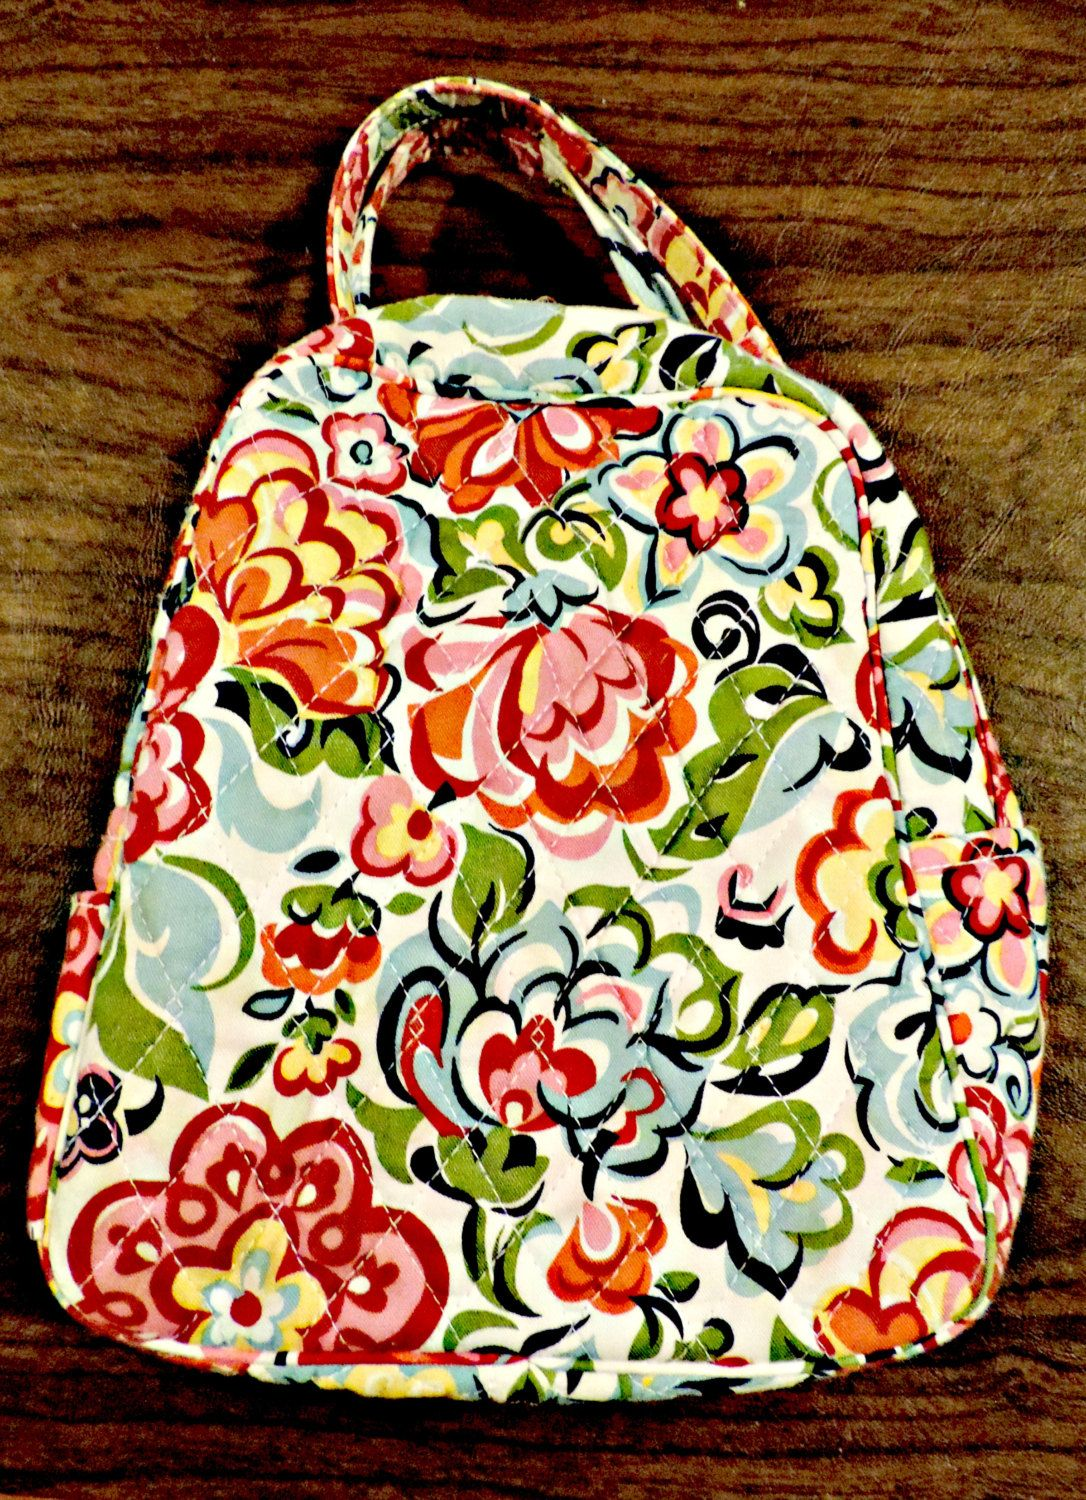 ac8f5d1de4 Vintage Vera Bradley Small Insulated Lunch Box in Red